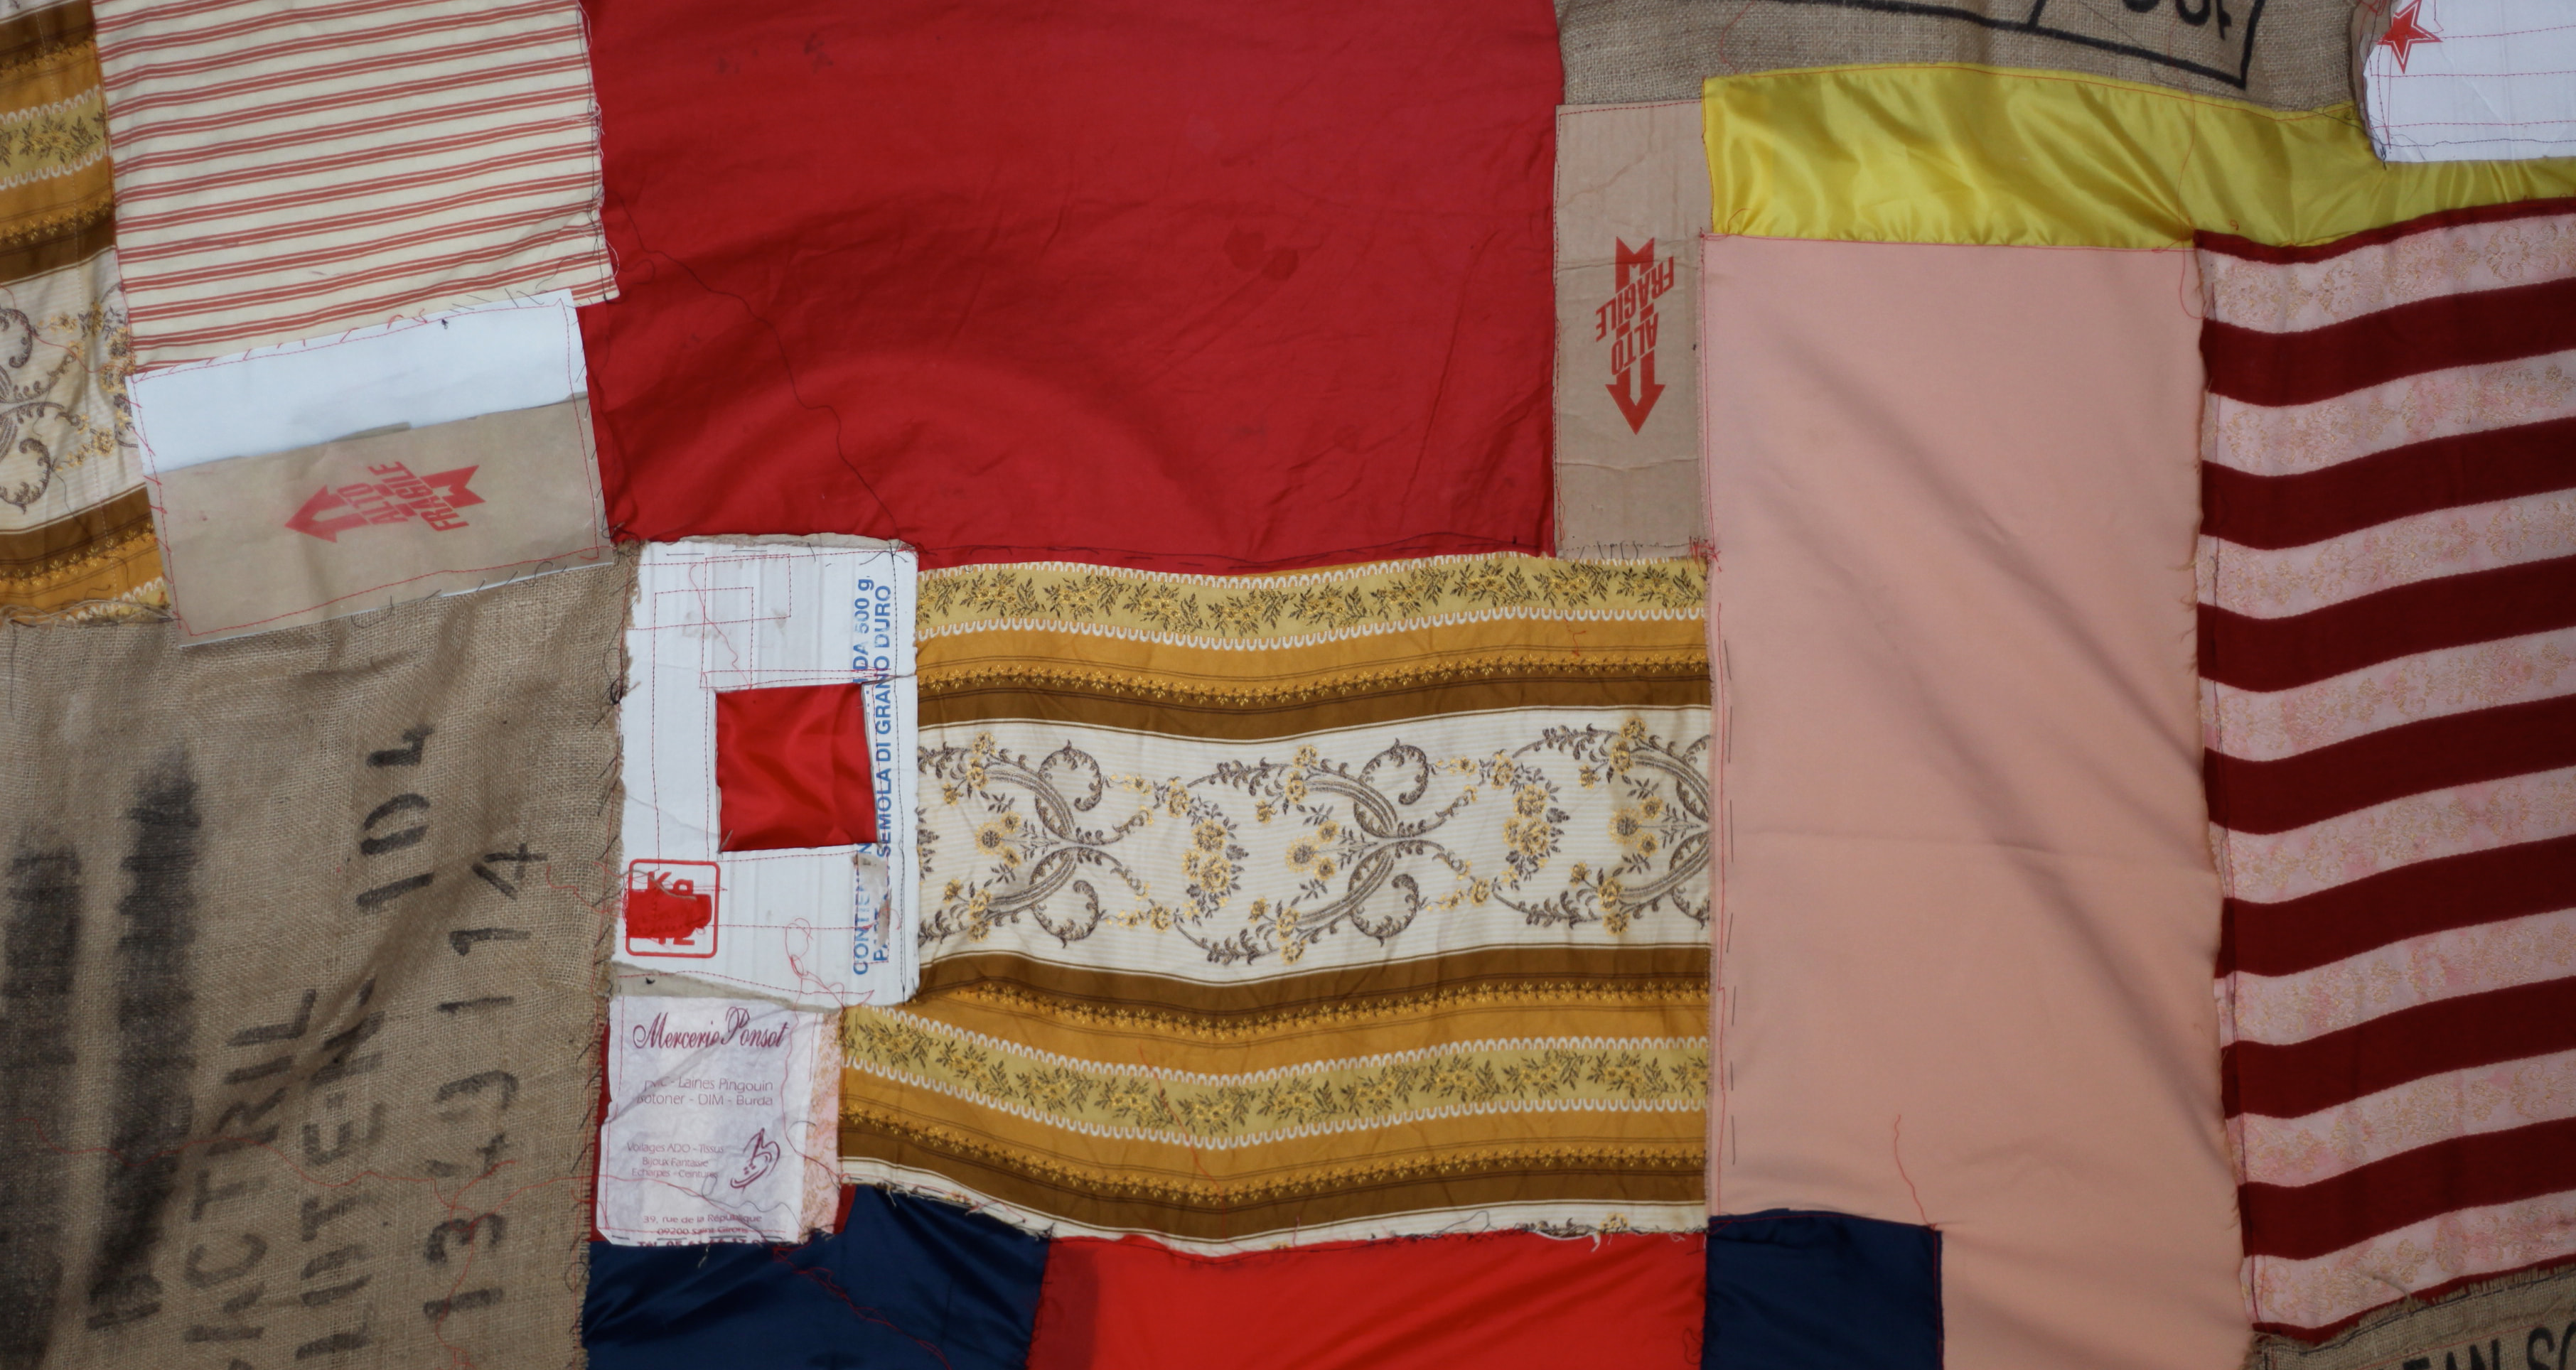 Anna Caione Clean, Sound and New 2012 Reclaimed fabrics and Cardboar